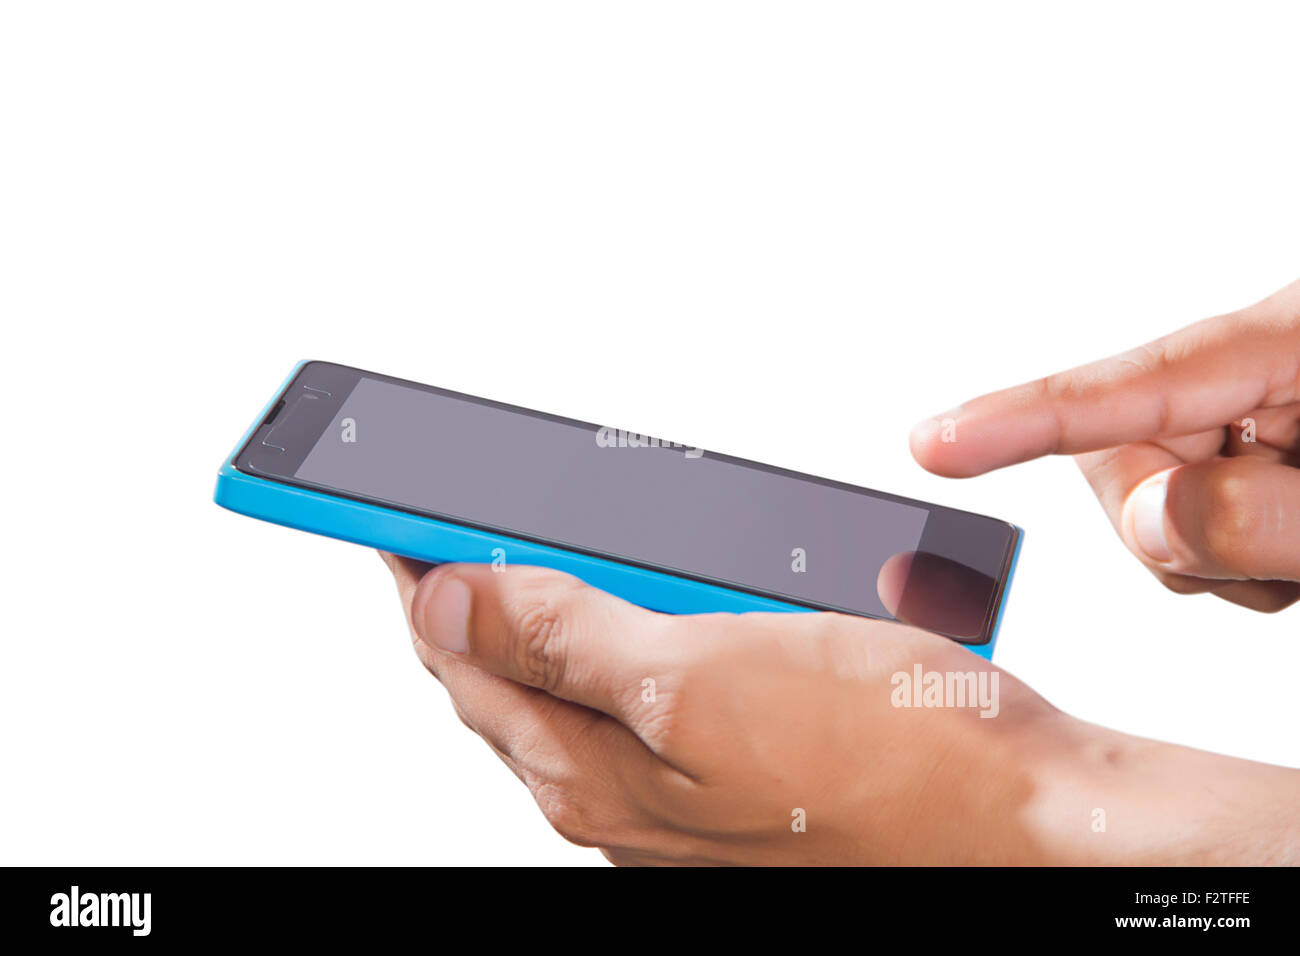 1 Adult Man Mobile Phone Technology - Stock Image